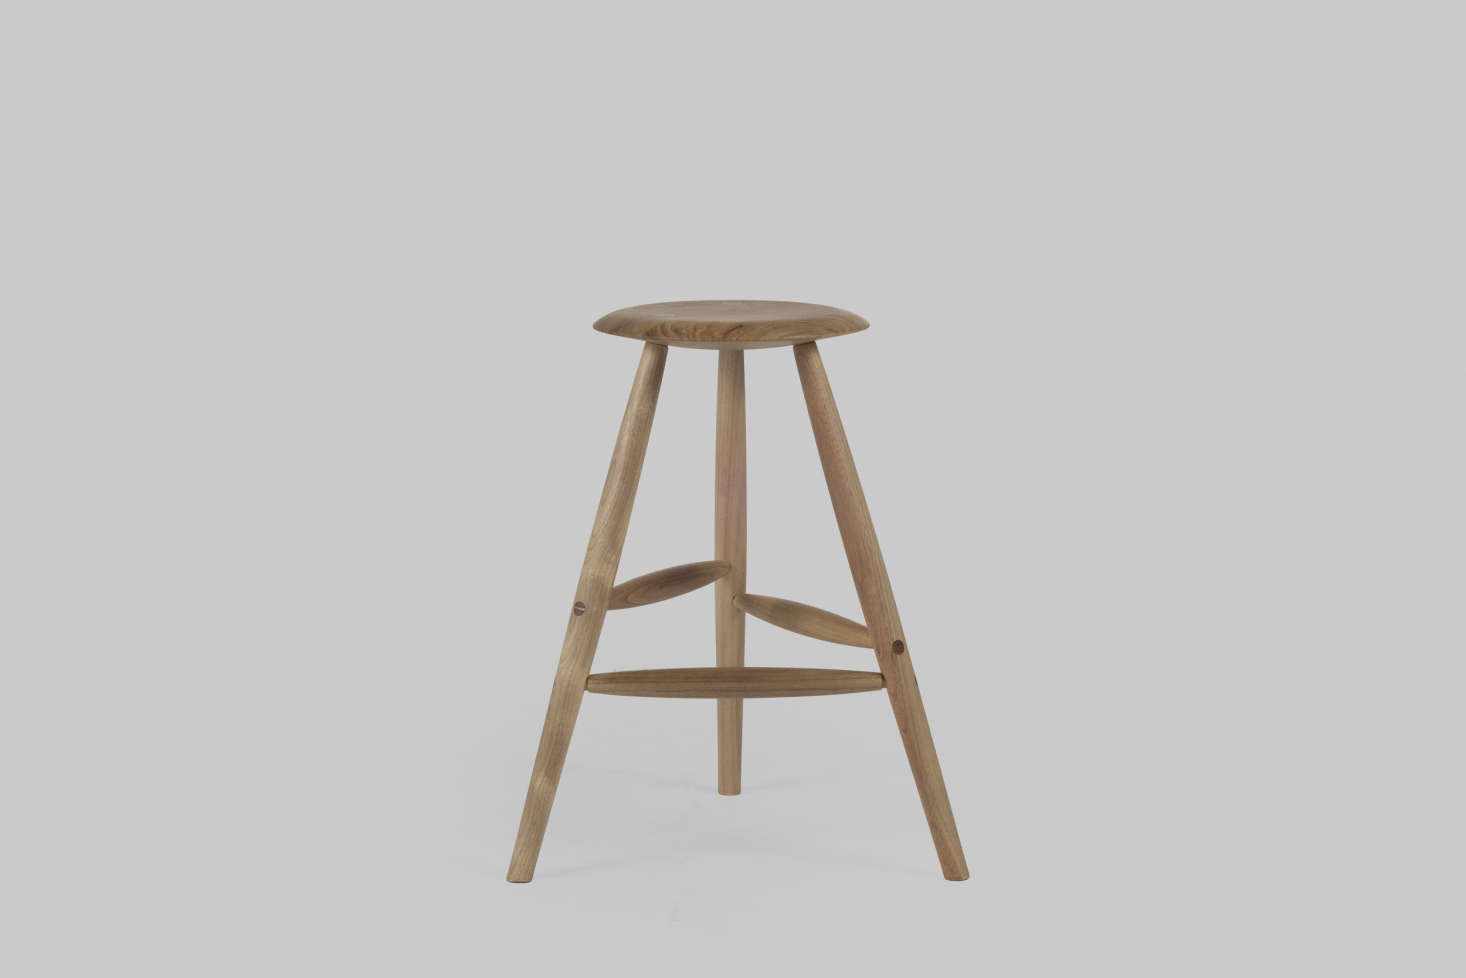 The winner will be able to customize their stool from the selection of woods and finishes; this is the stool in bleached walnut.